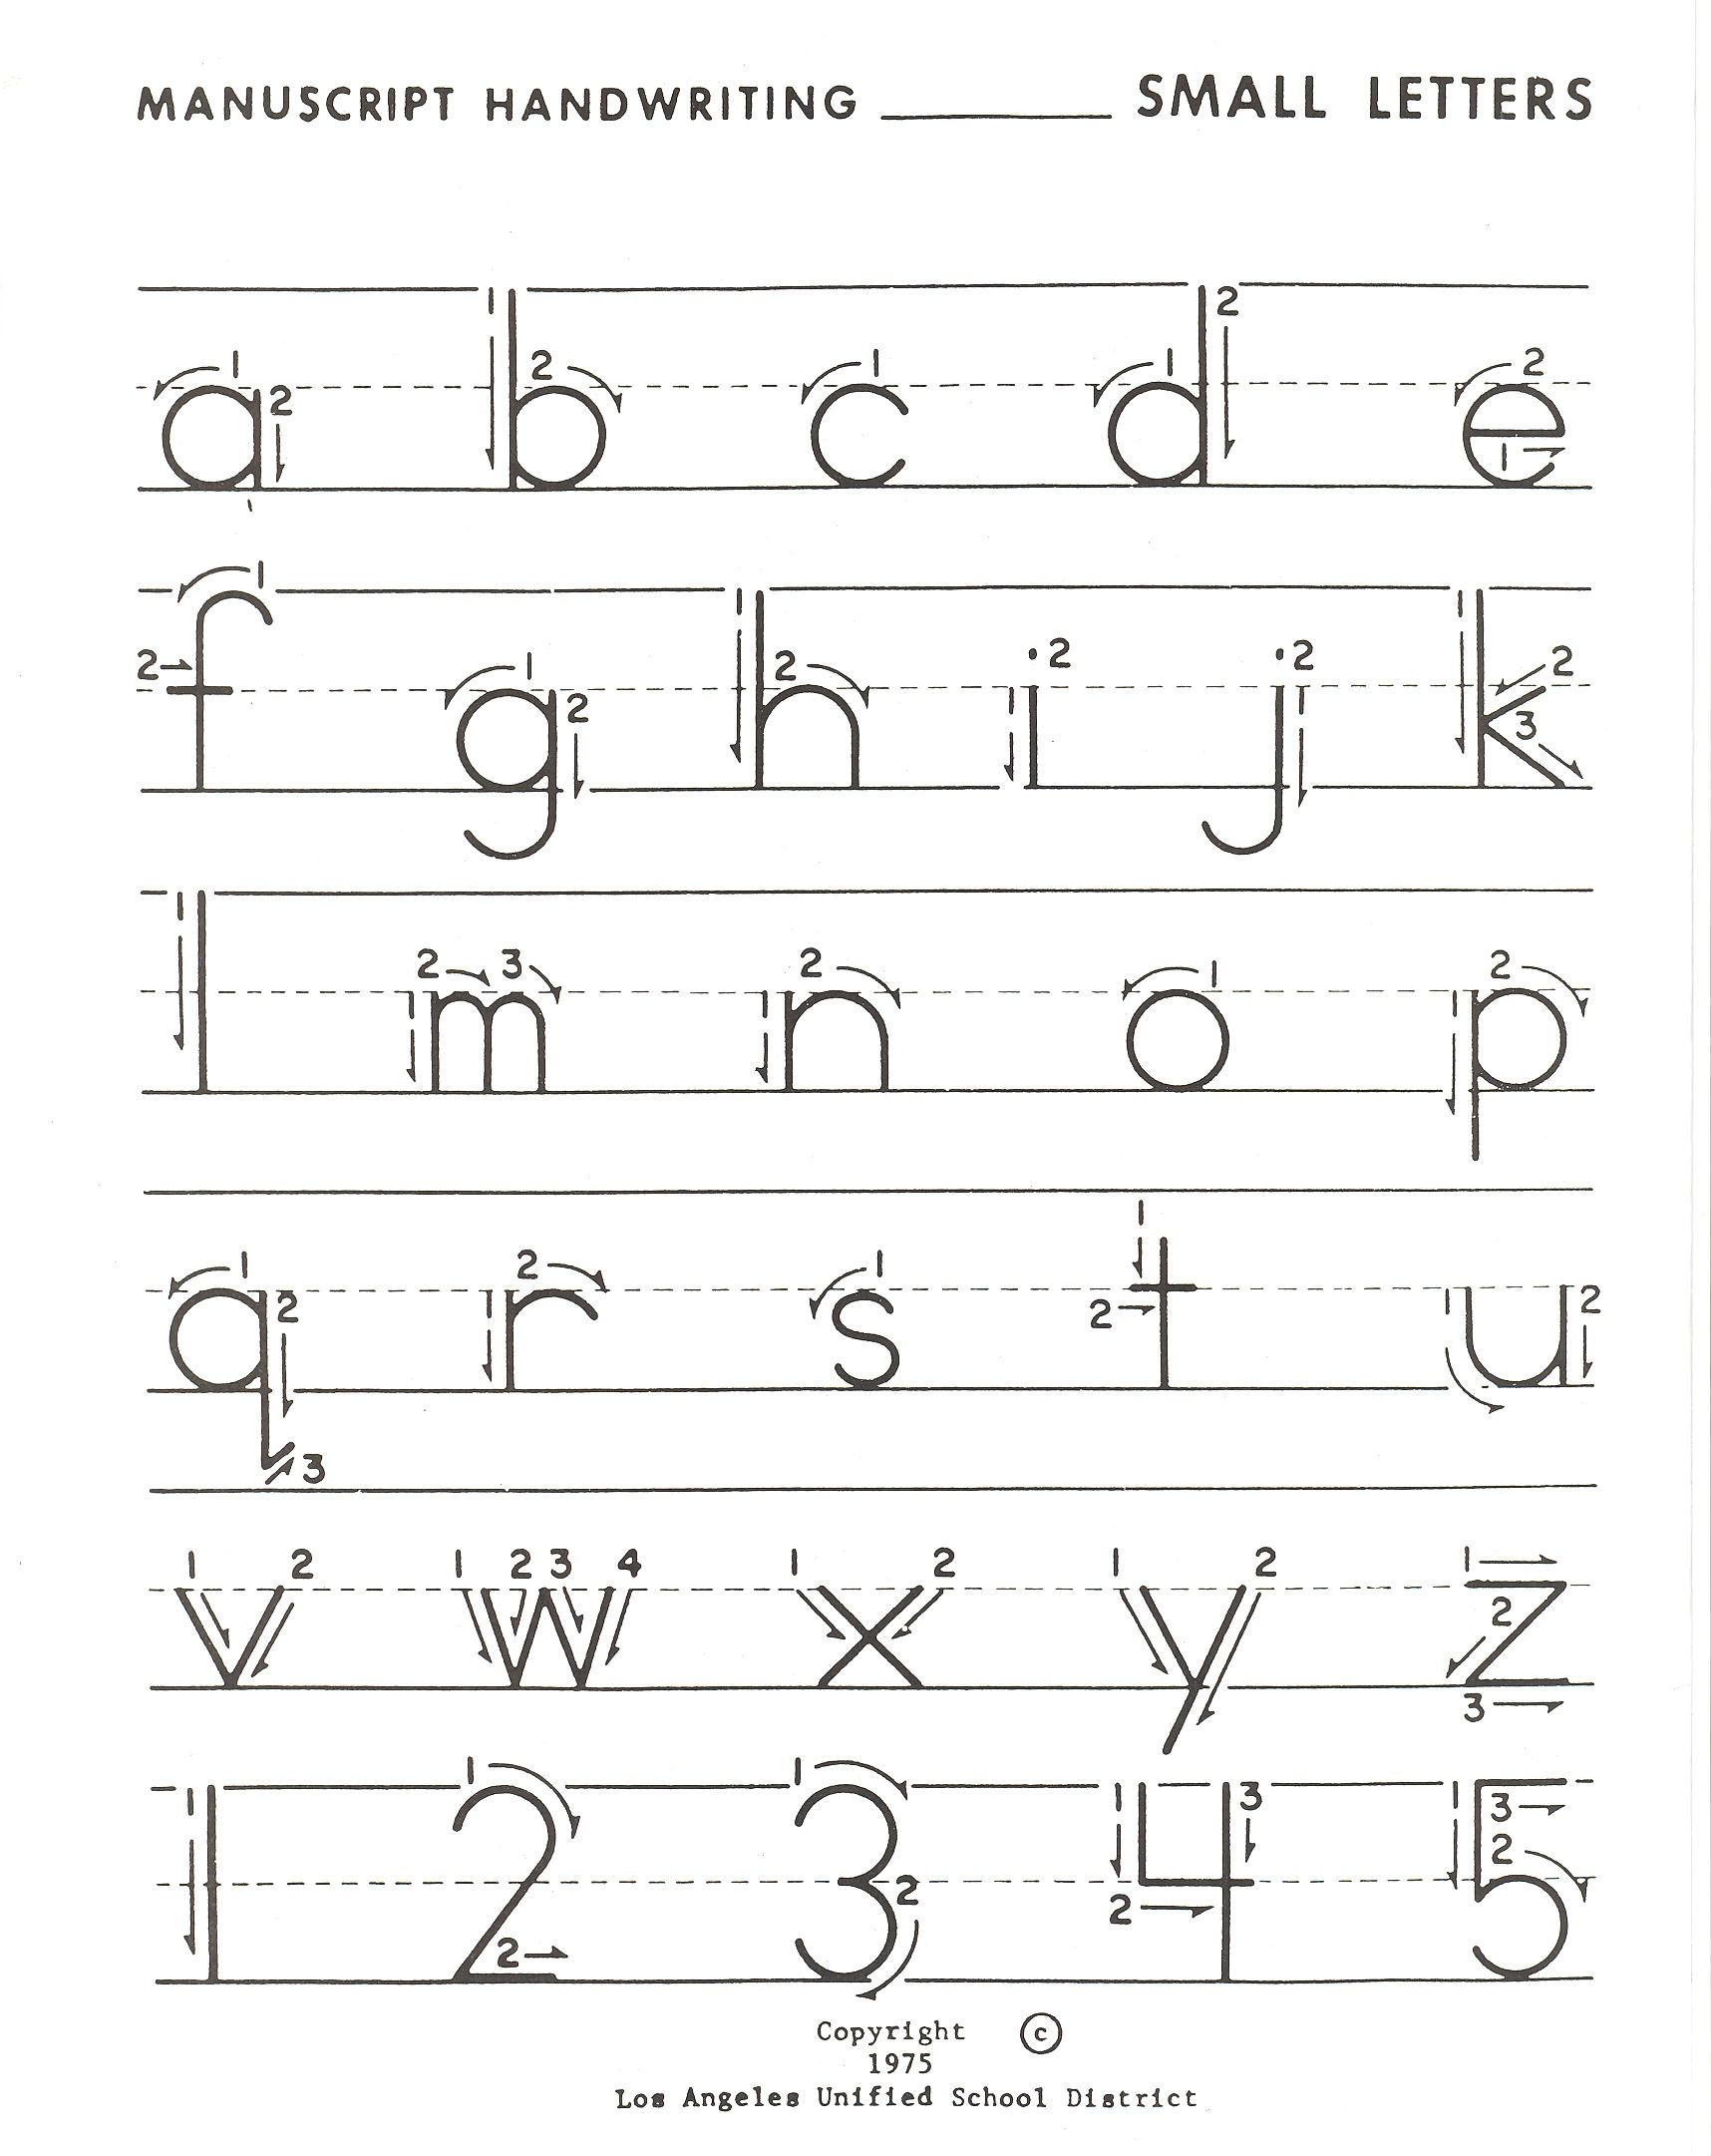 Worksheets Small Letter Alphabet Hand Writing lowercase letter practice worksheets pinterest lower case letters cases and homework